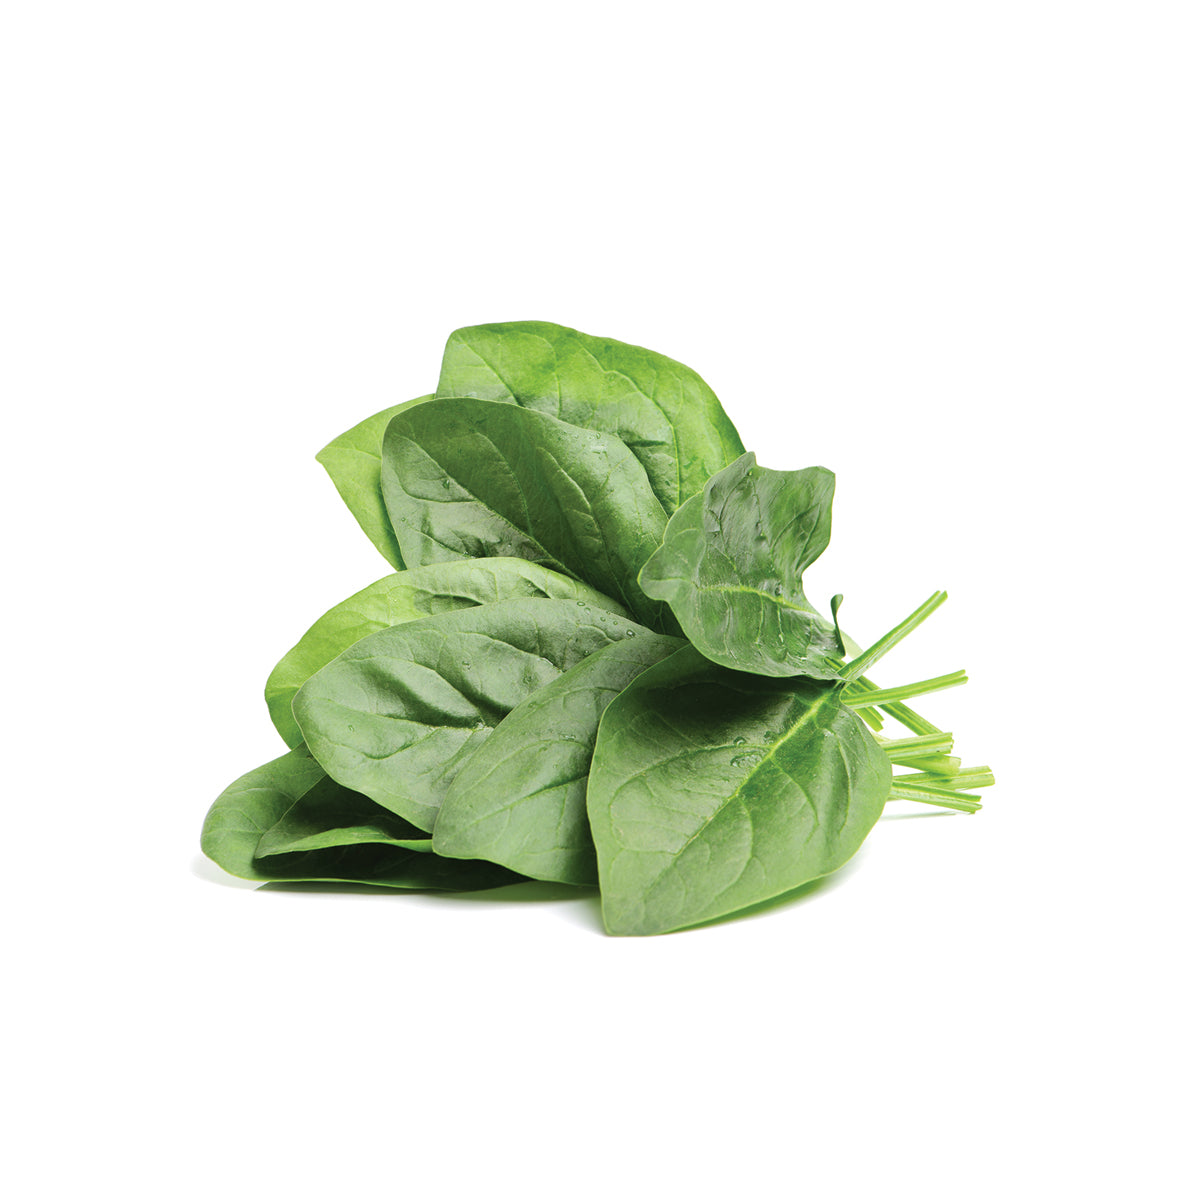 All-natural spinach extract